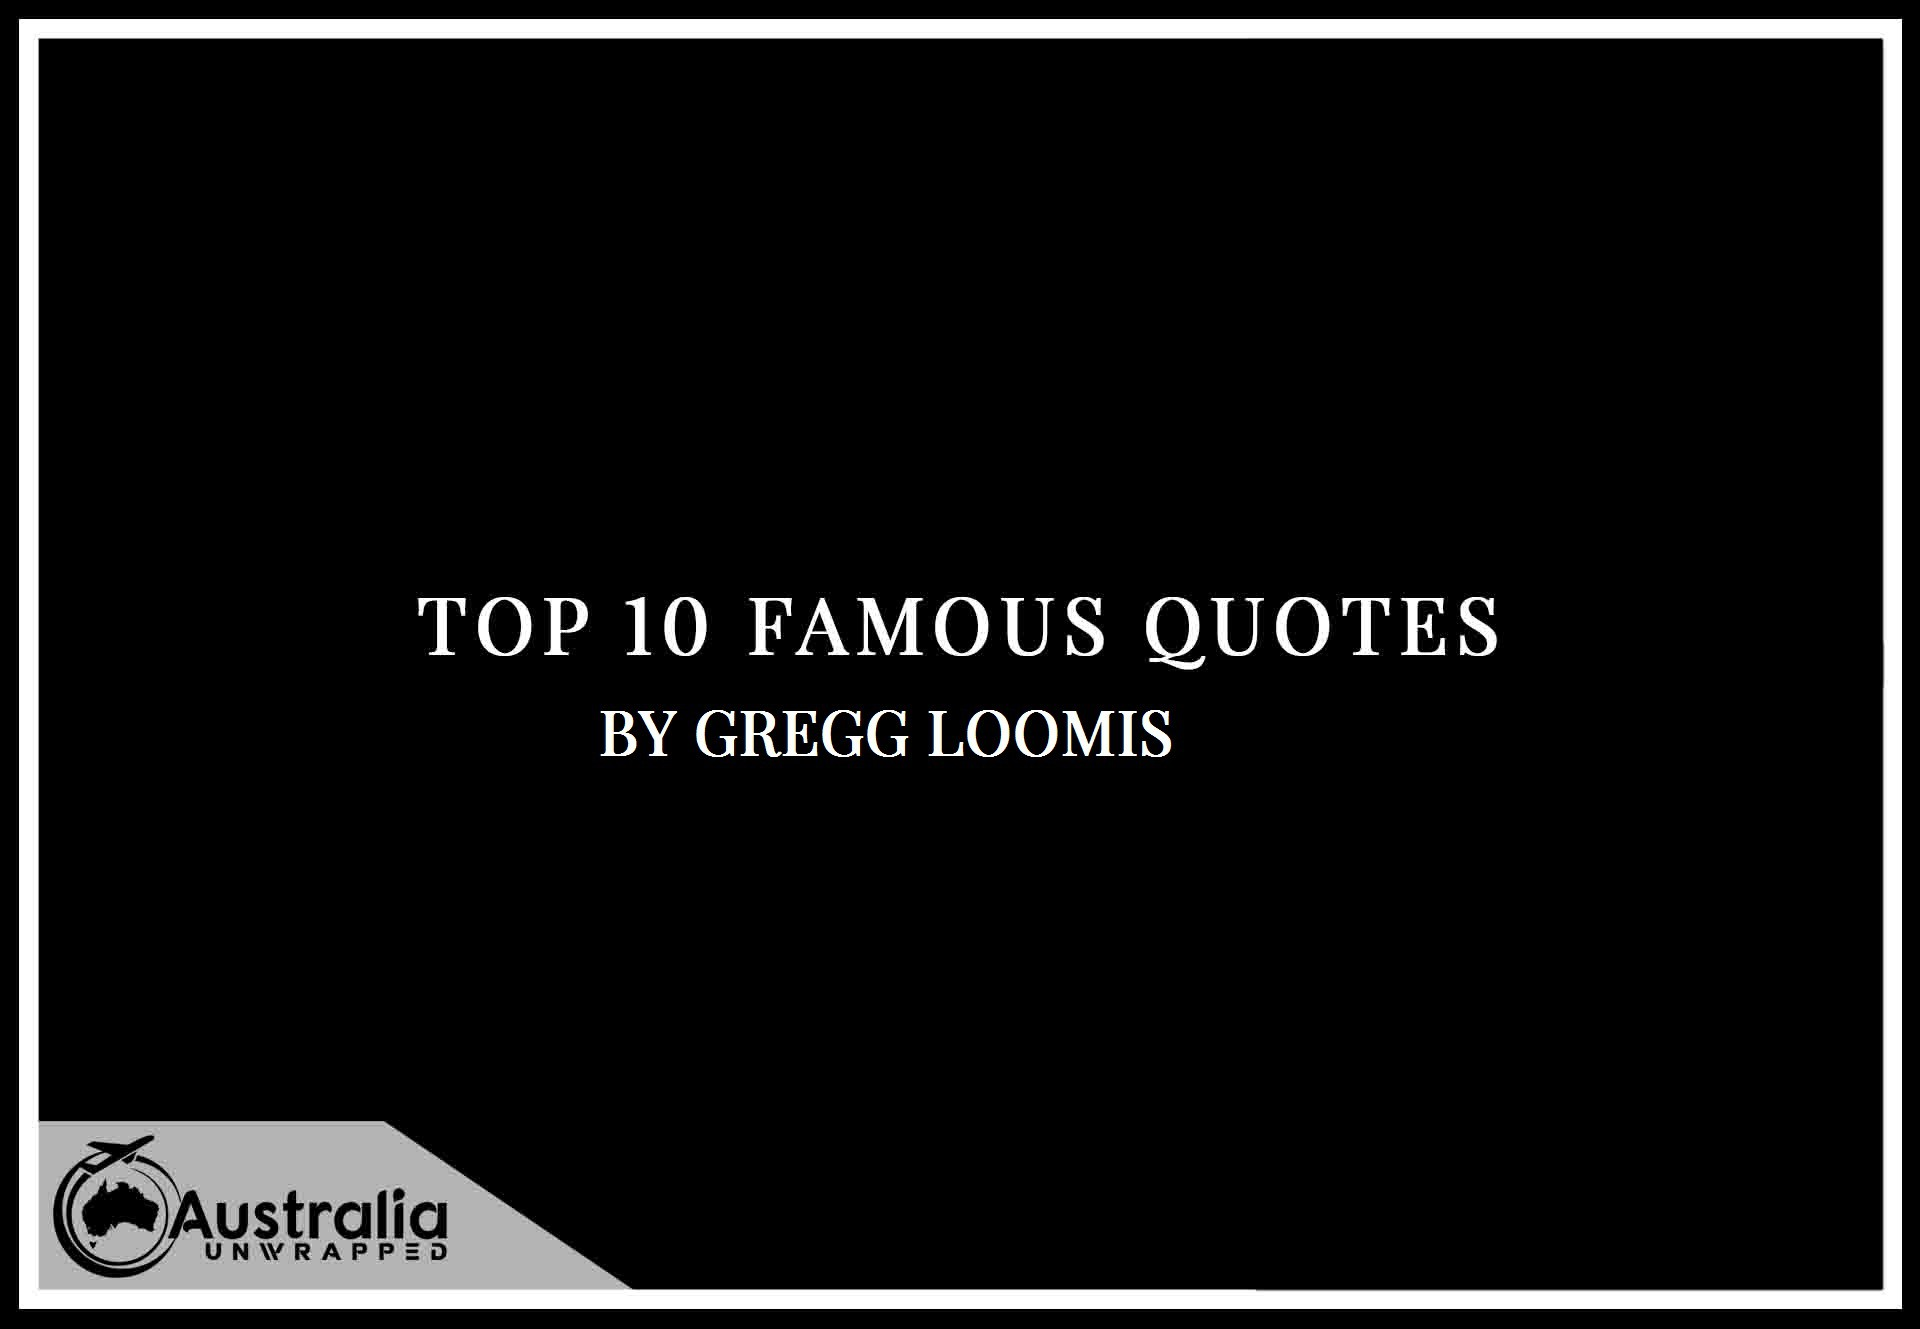 Gregg Loomis's Top 10 Popular and Famous Quotes